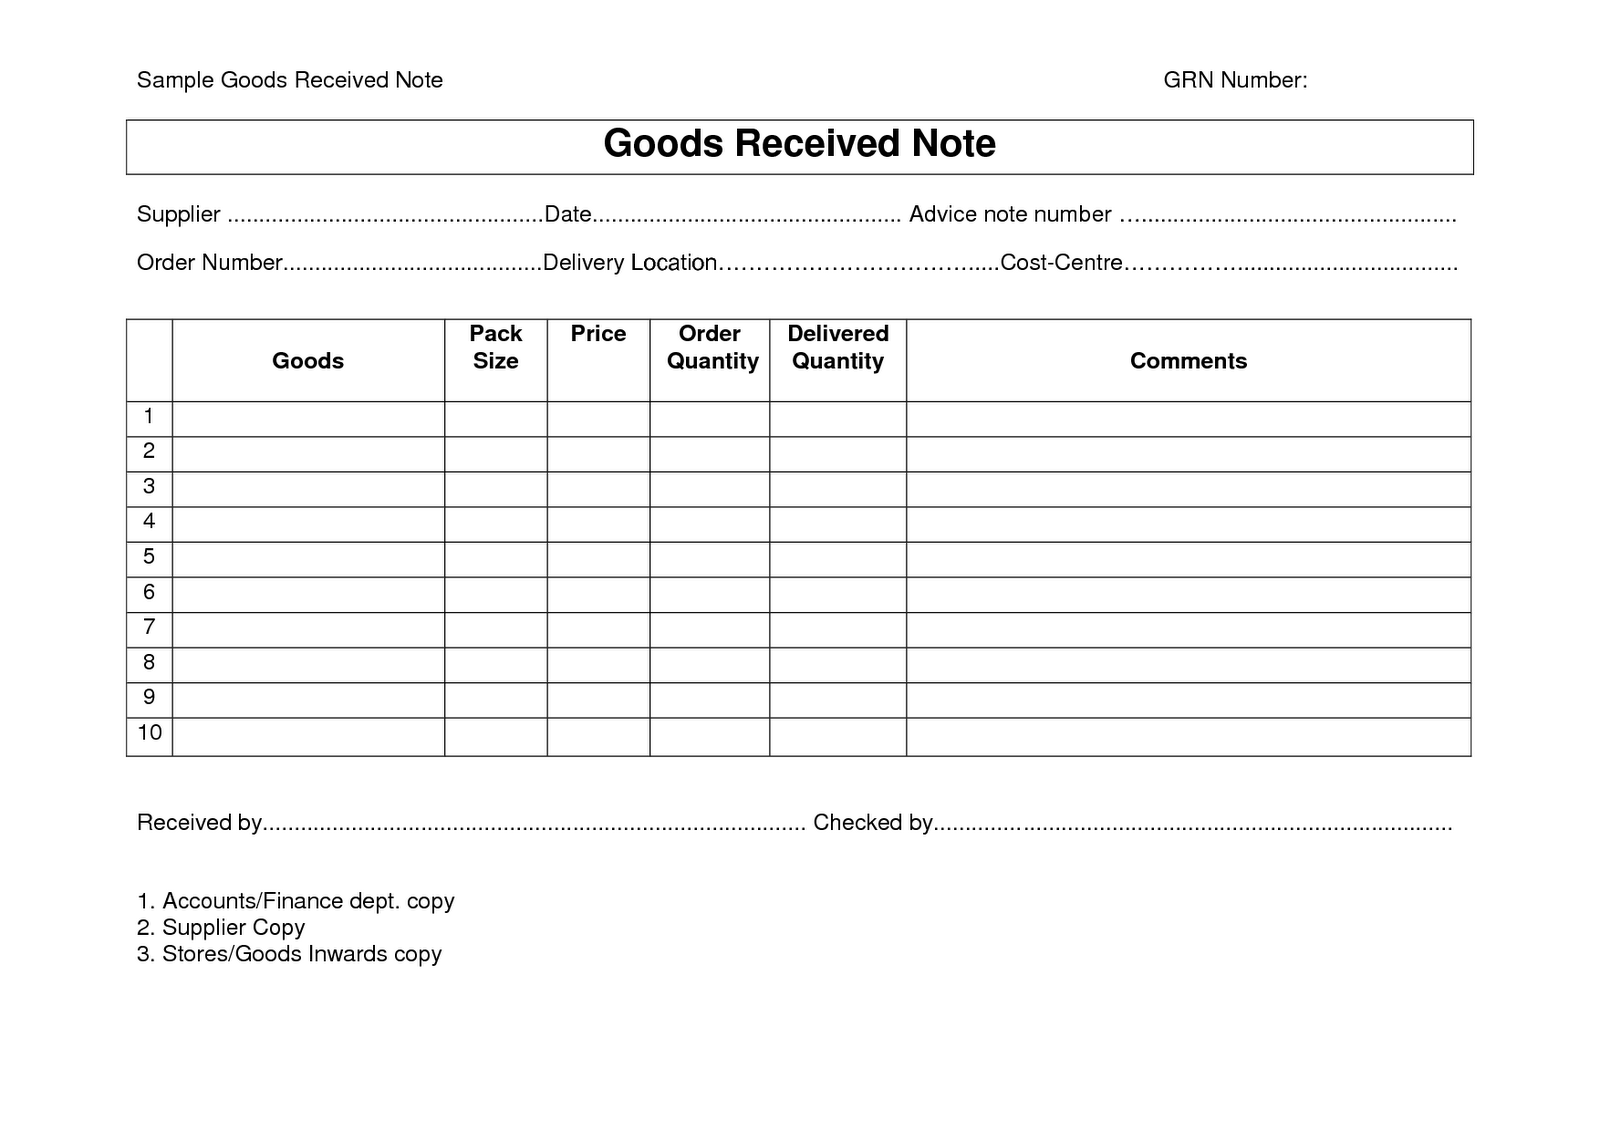 standard shipping note template - image result for goods received note format download